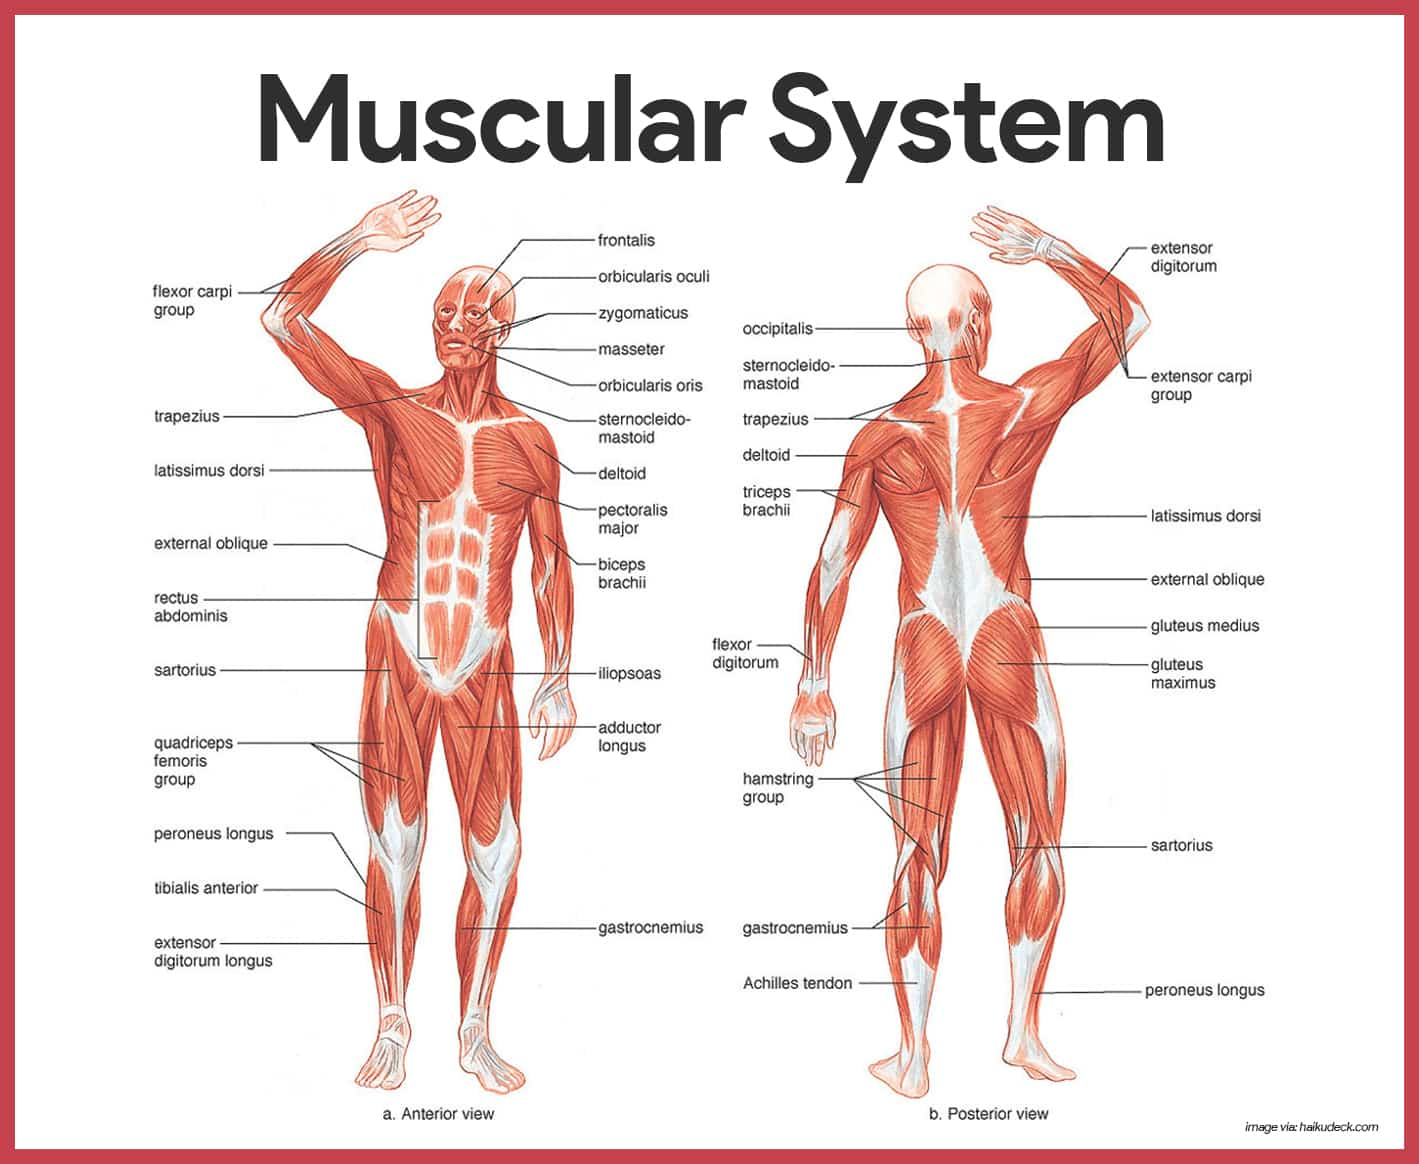 Muscular System Anatomy and Physiology • Nurseslabs